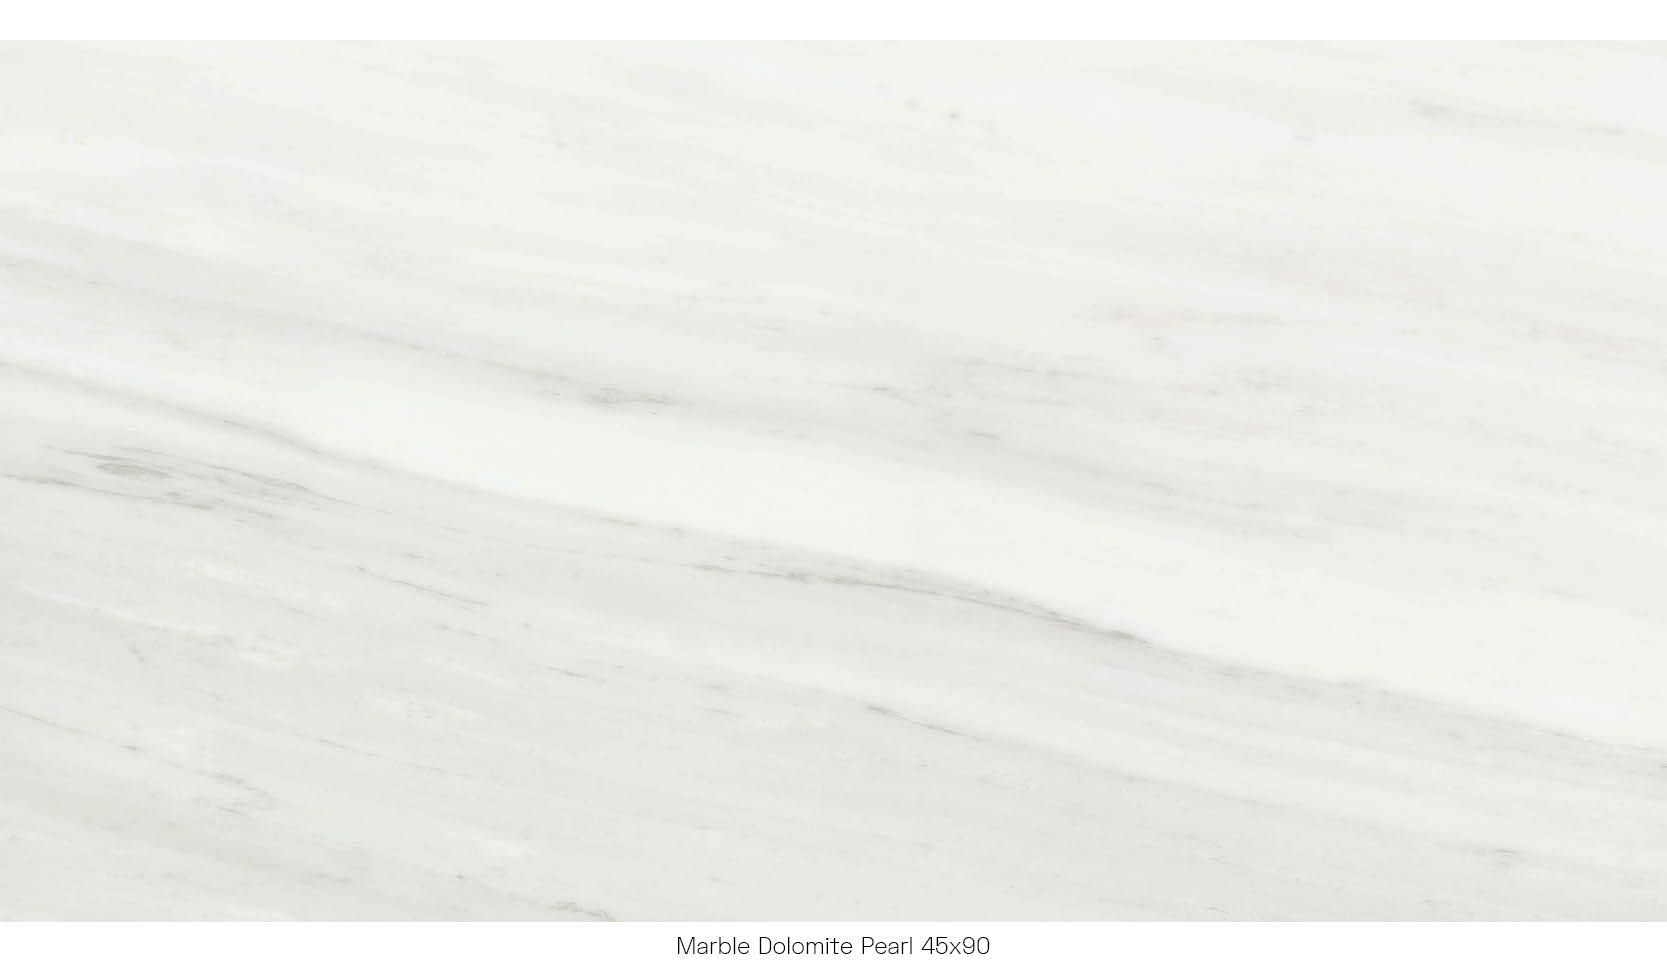 Marble dolomite pearl 45 x 90